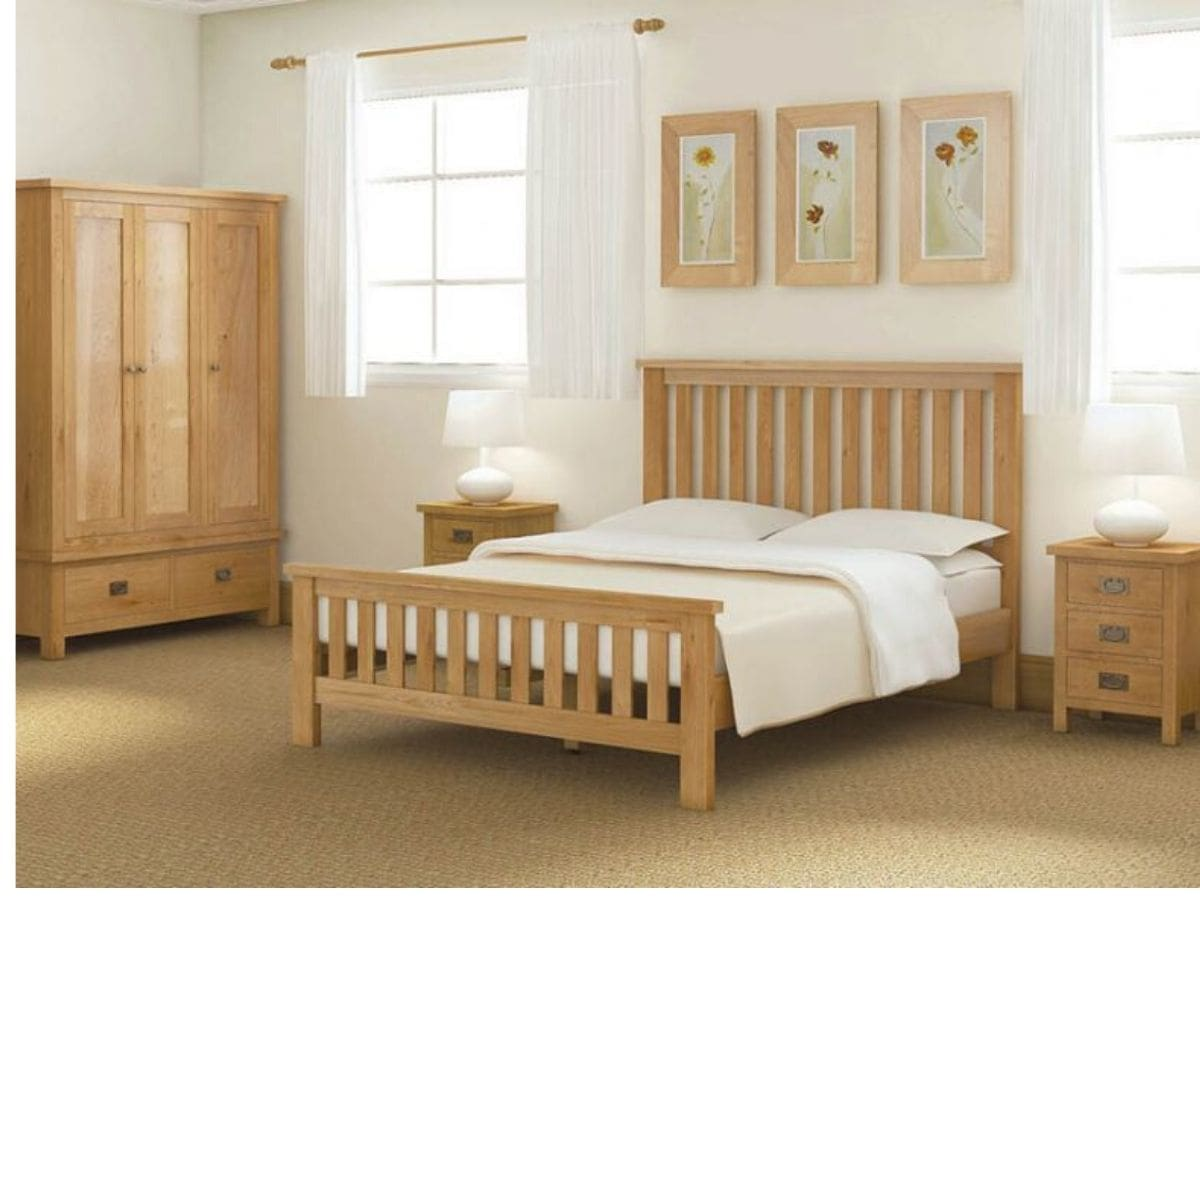 Sonia Double Wardrobe with Drawer